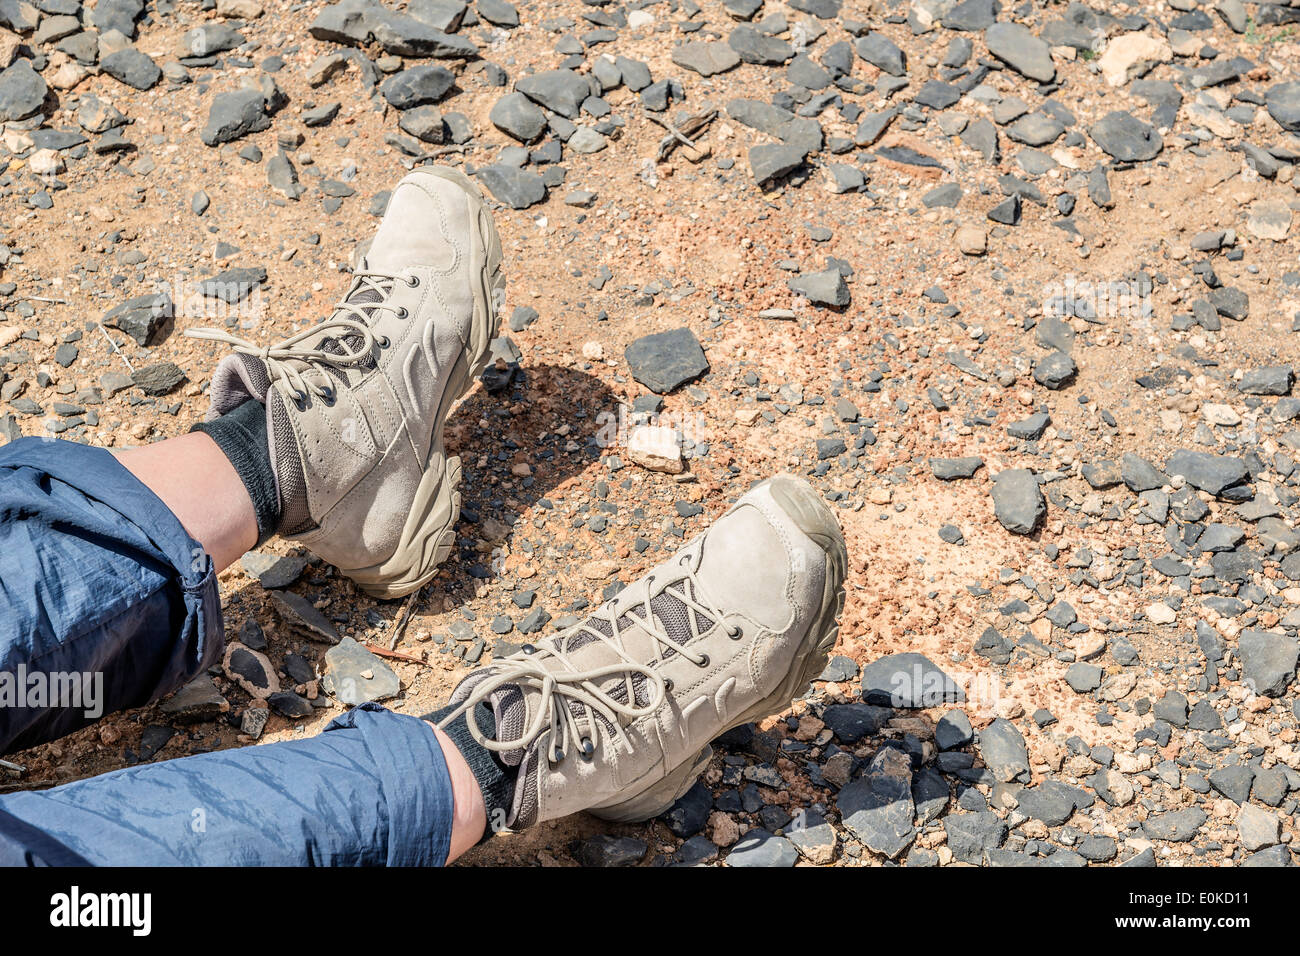 Closeup of tramping boots of a resting person on Jebel Shams Oman - Stock Image